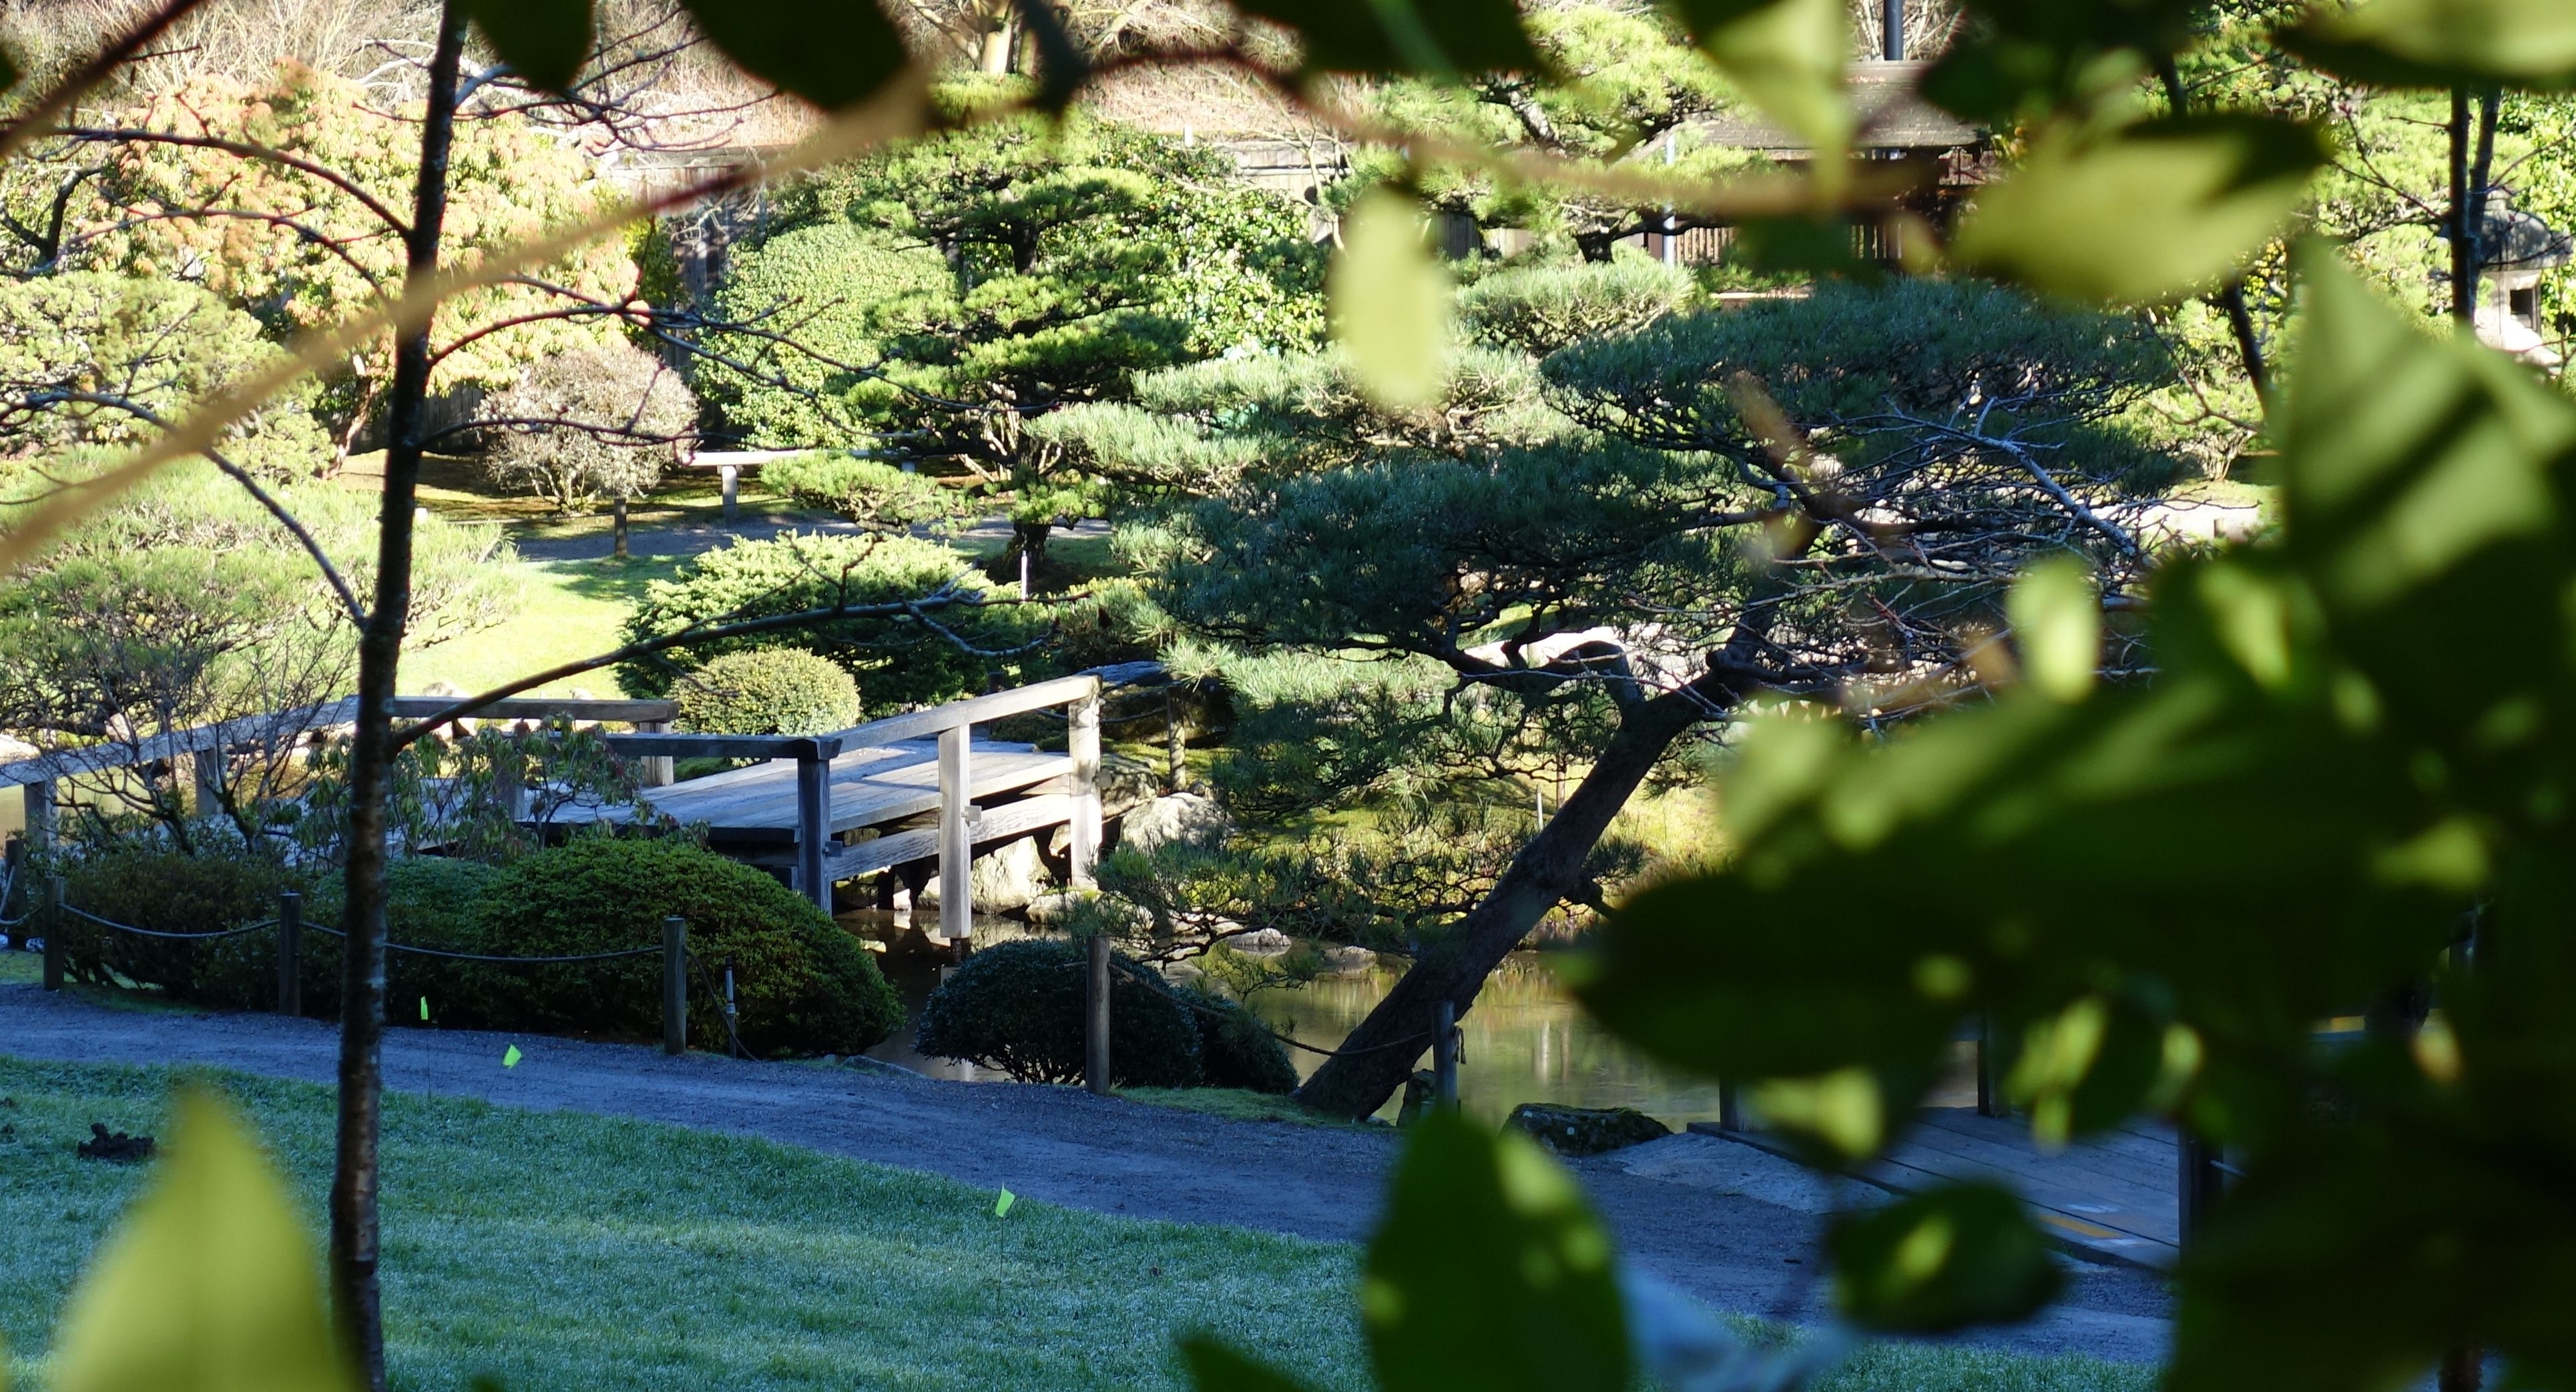 seattle japanese garden from the outside when it is closed in